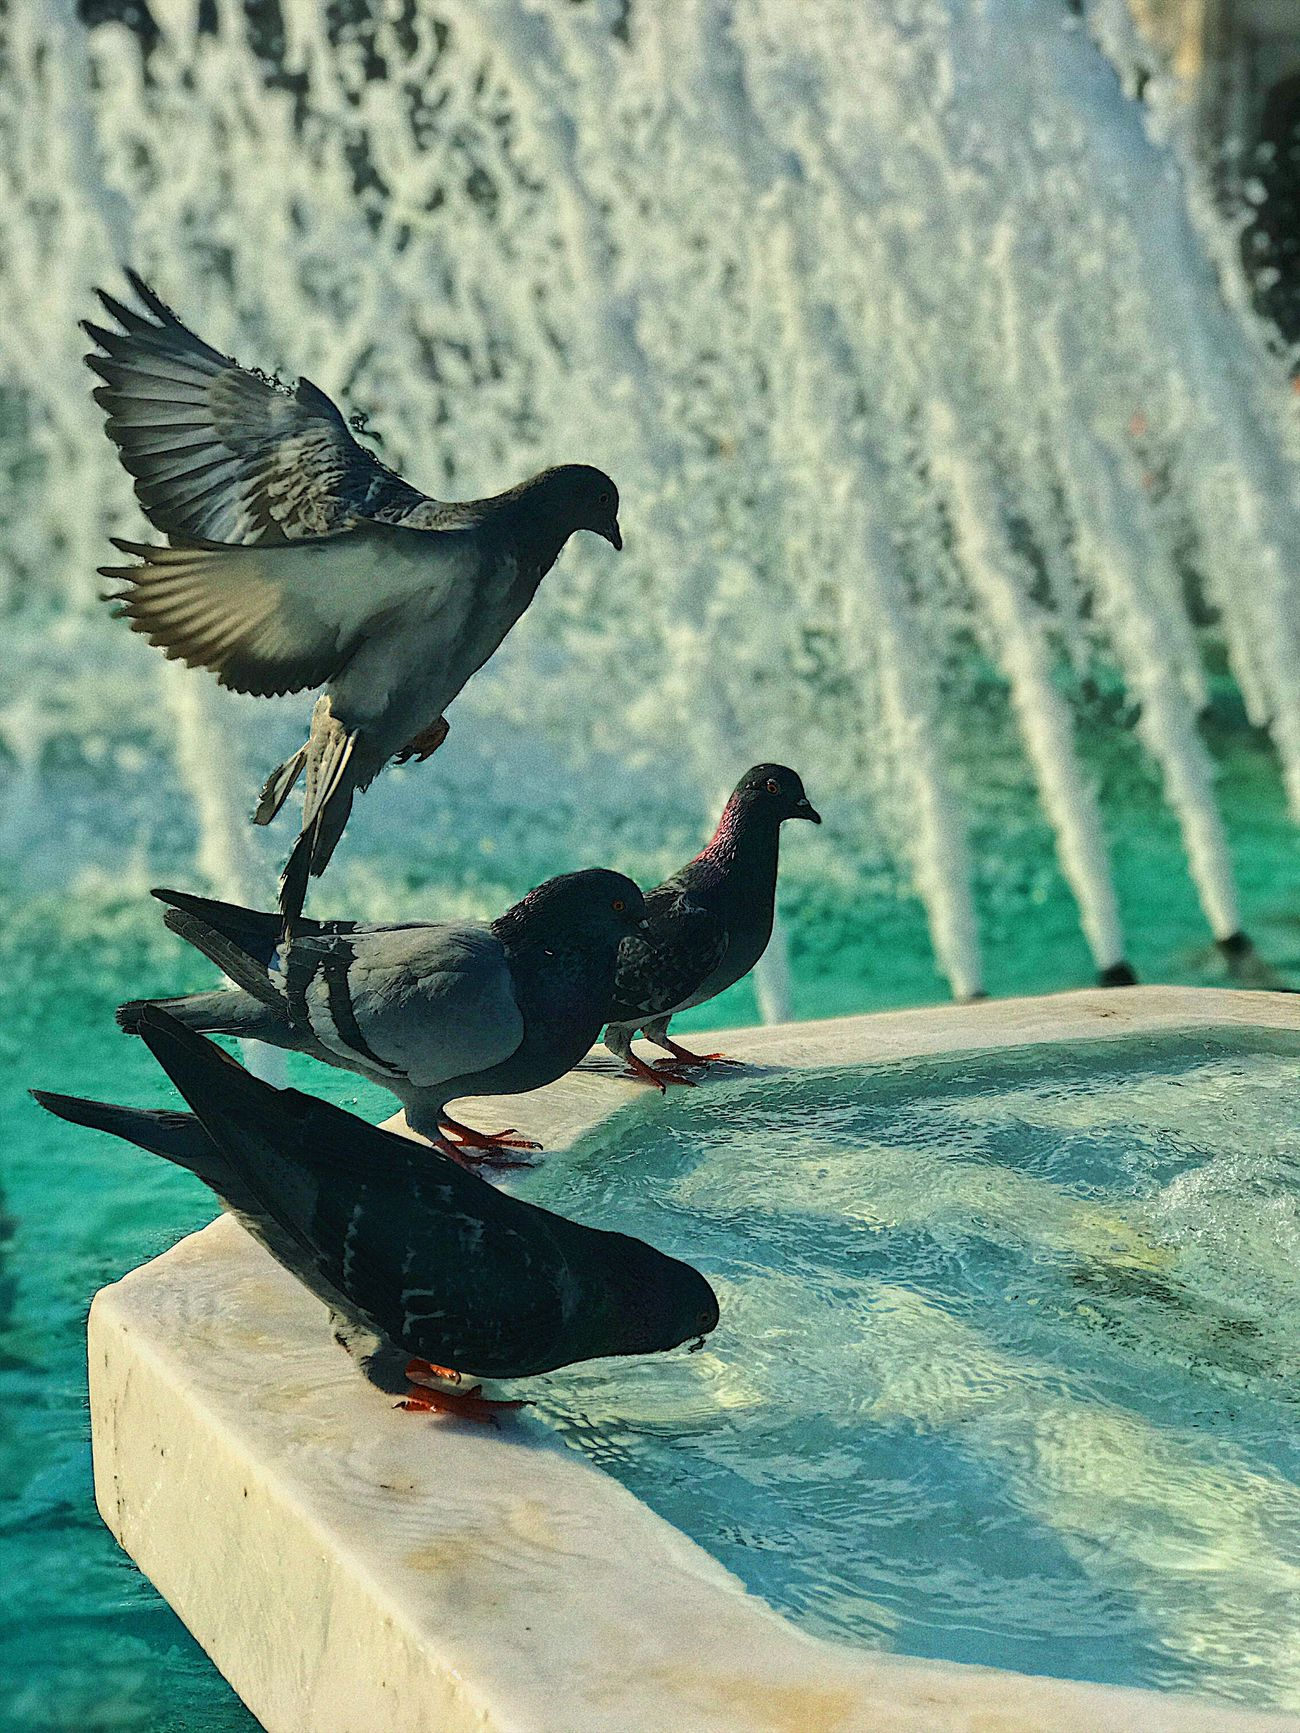 Bird Water Nature Animals In The Wild Animal Themes Animal Wildlife Raven - Bird Perching No People Day Outdoors Close-up First Eyeem Photo